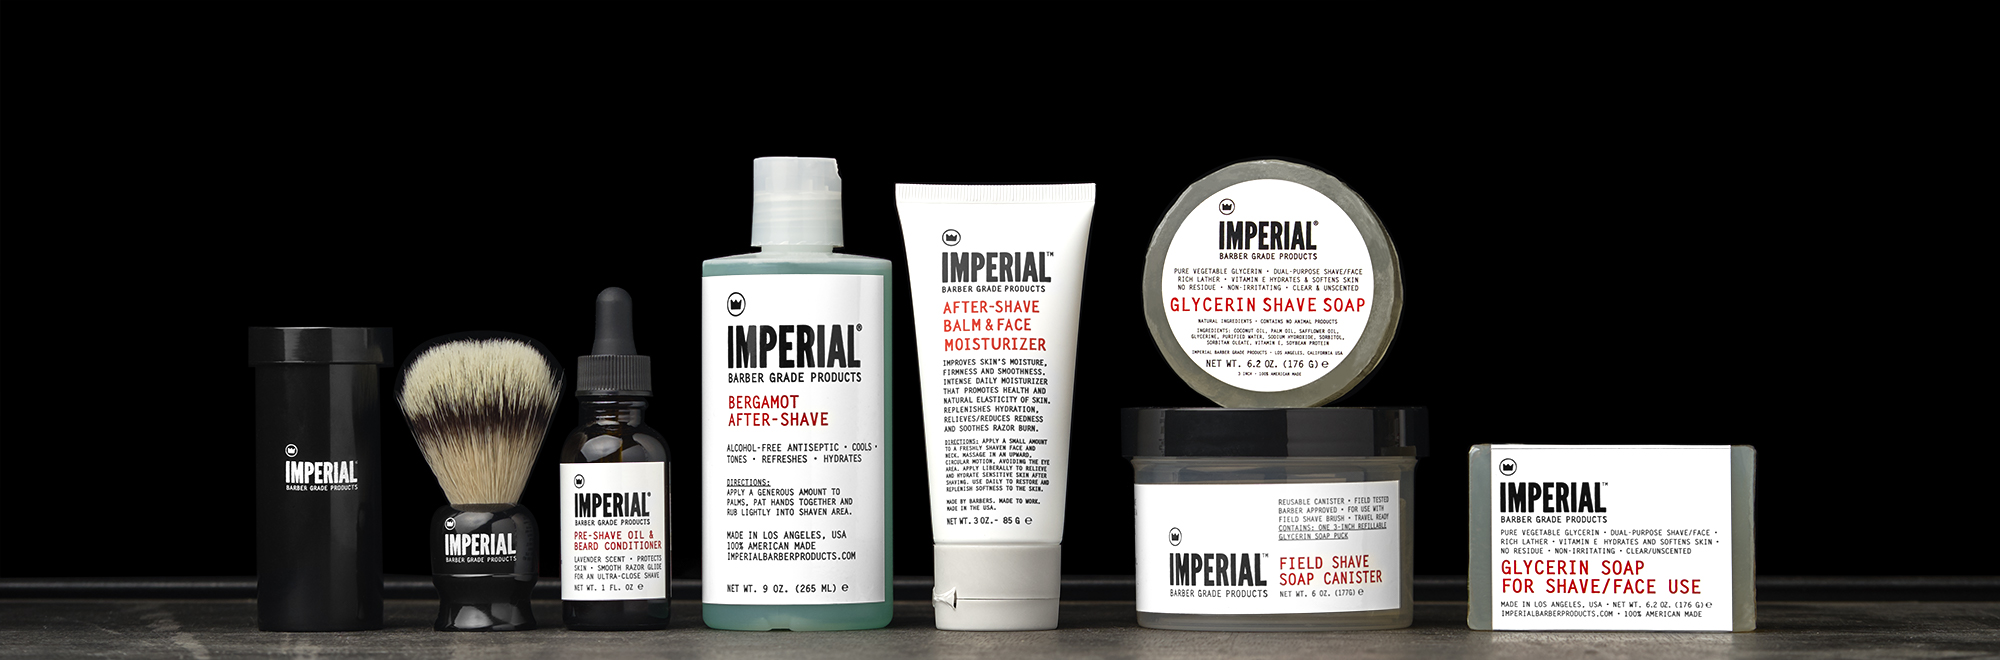 Shave - Imperial Barber Products